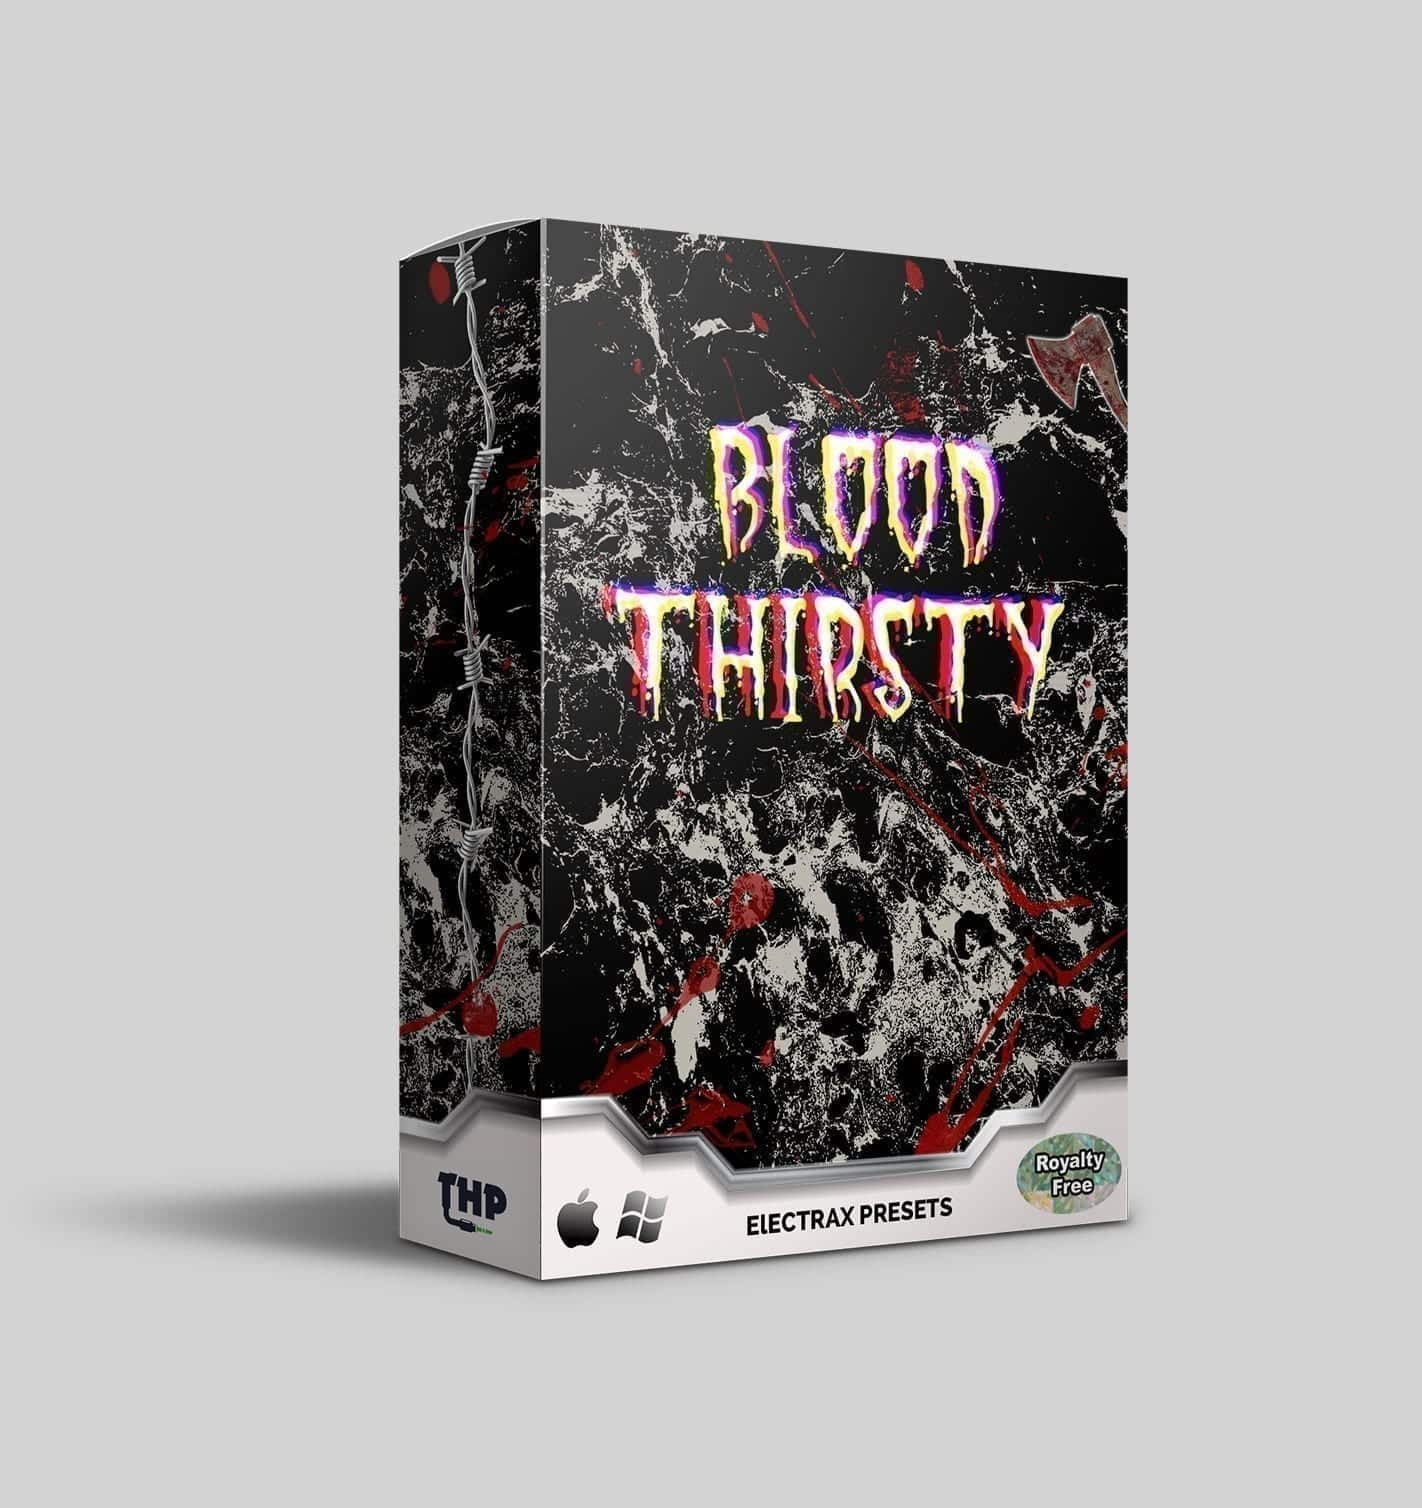 THP - Blood Thursty - ElectraX Presets